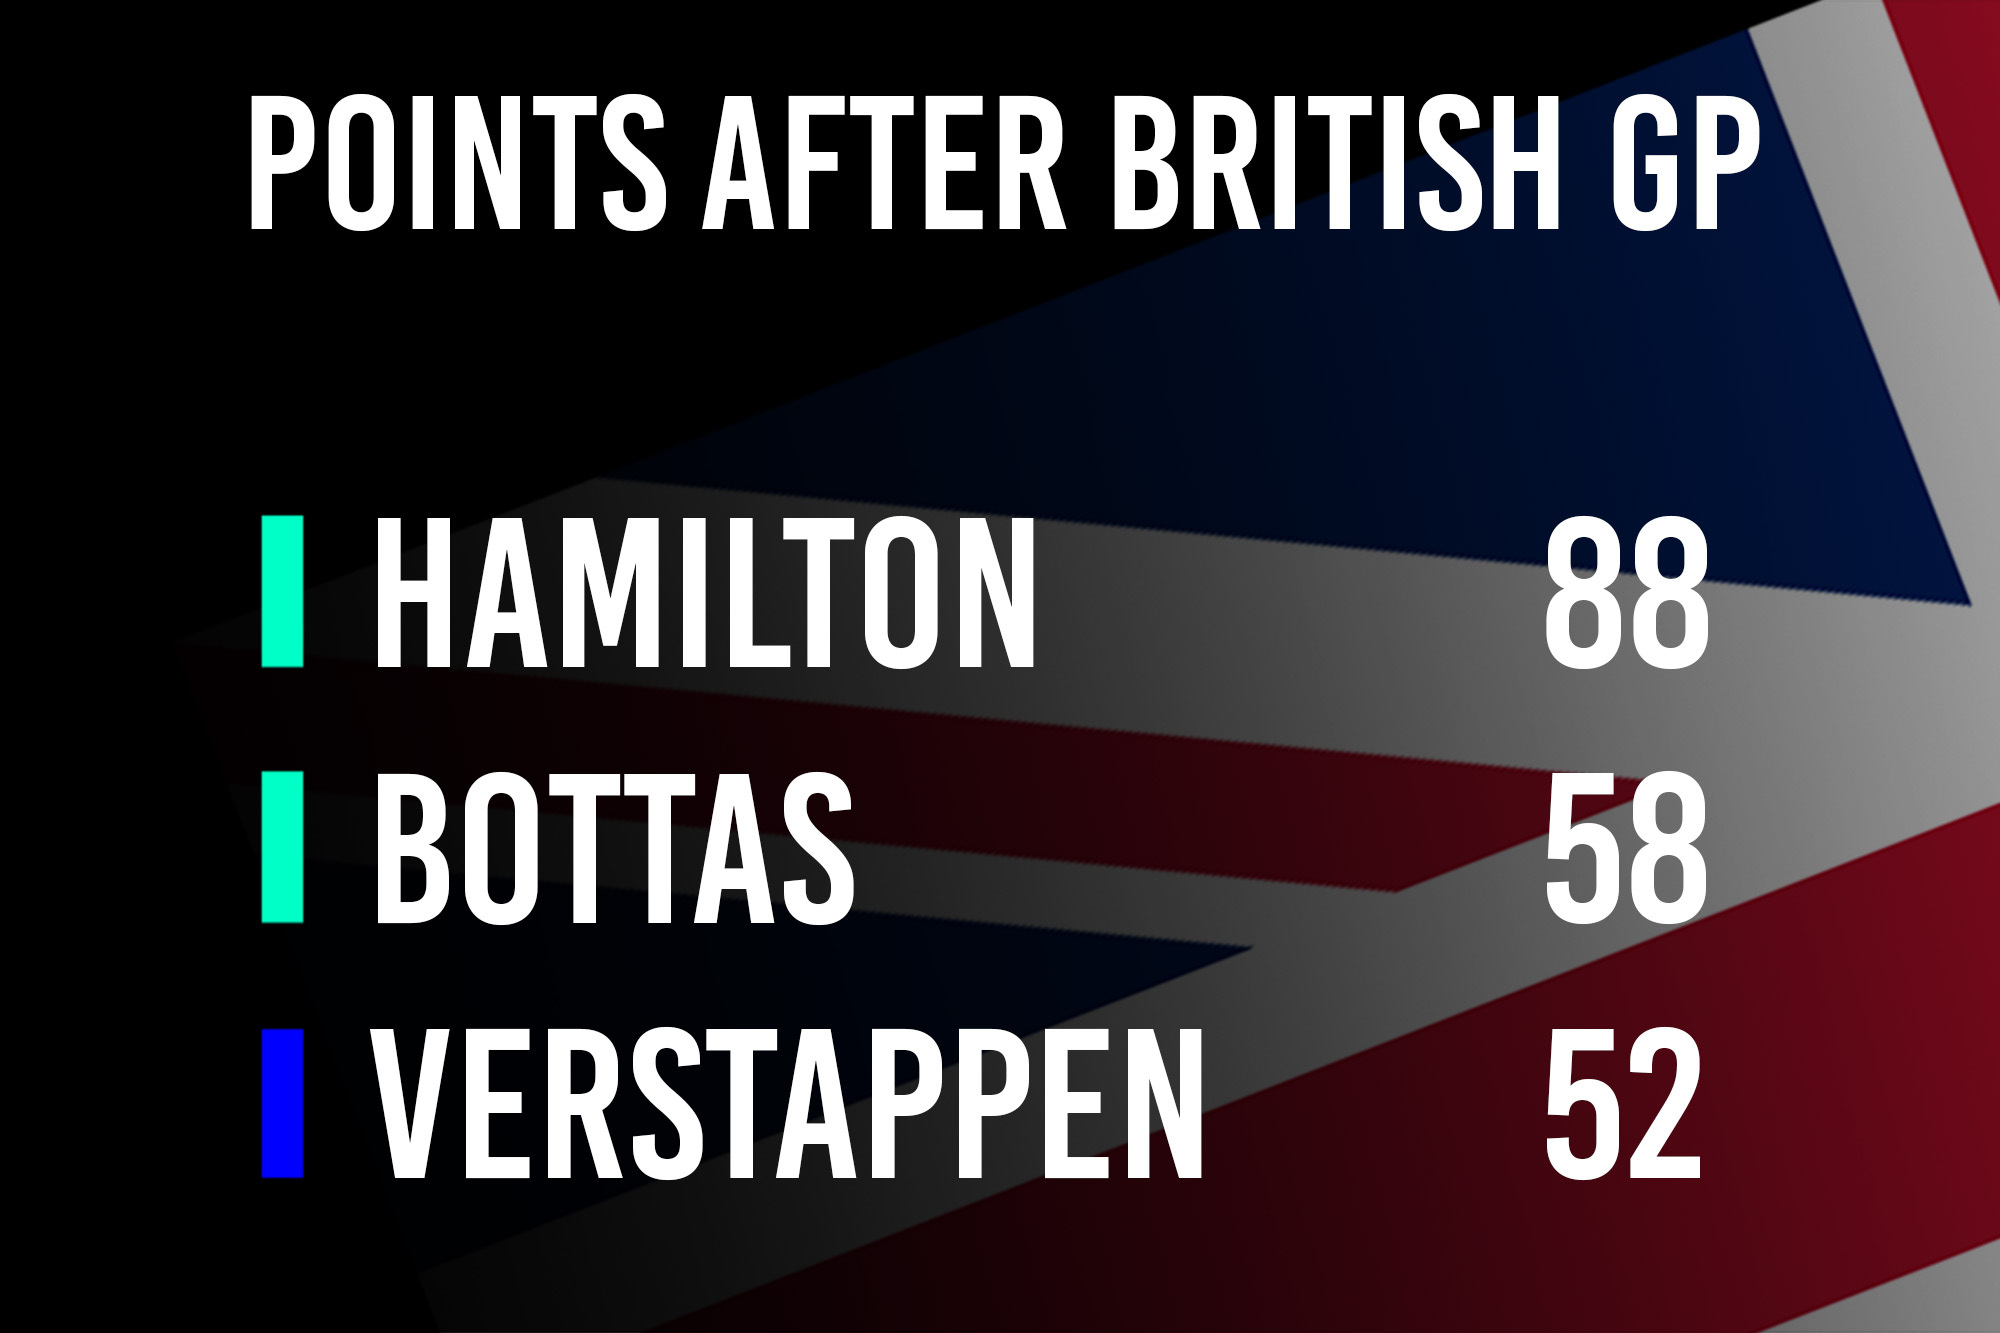 After Britain